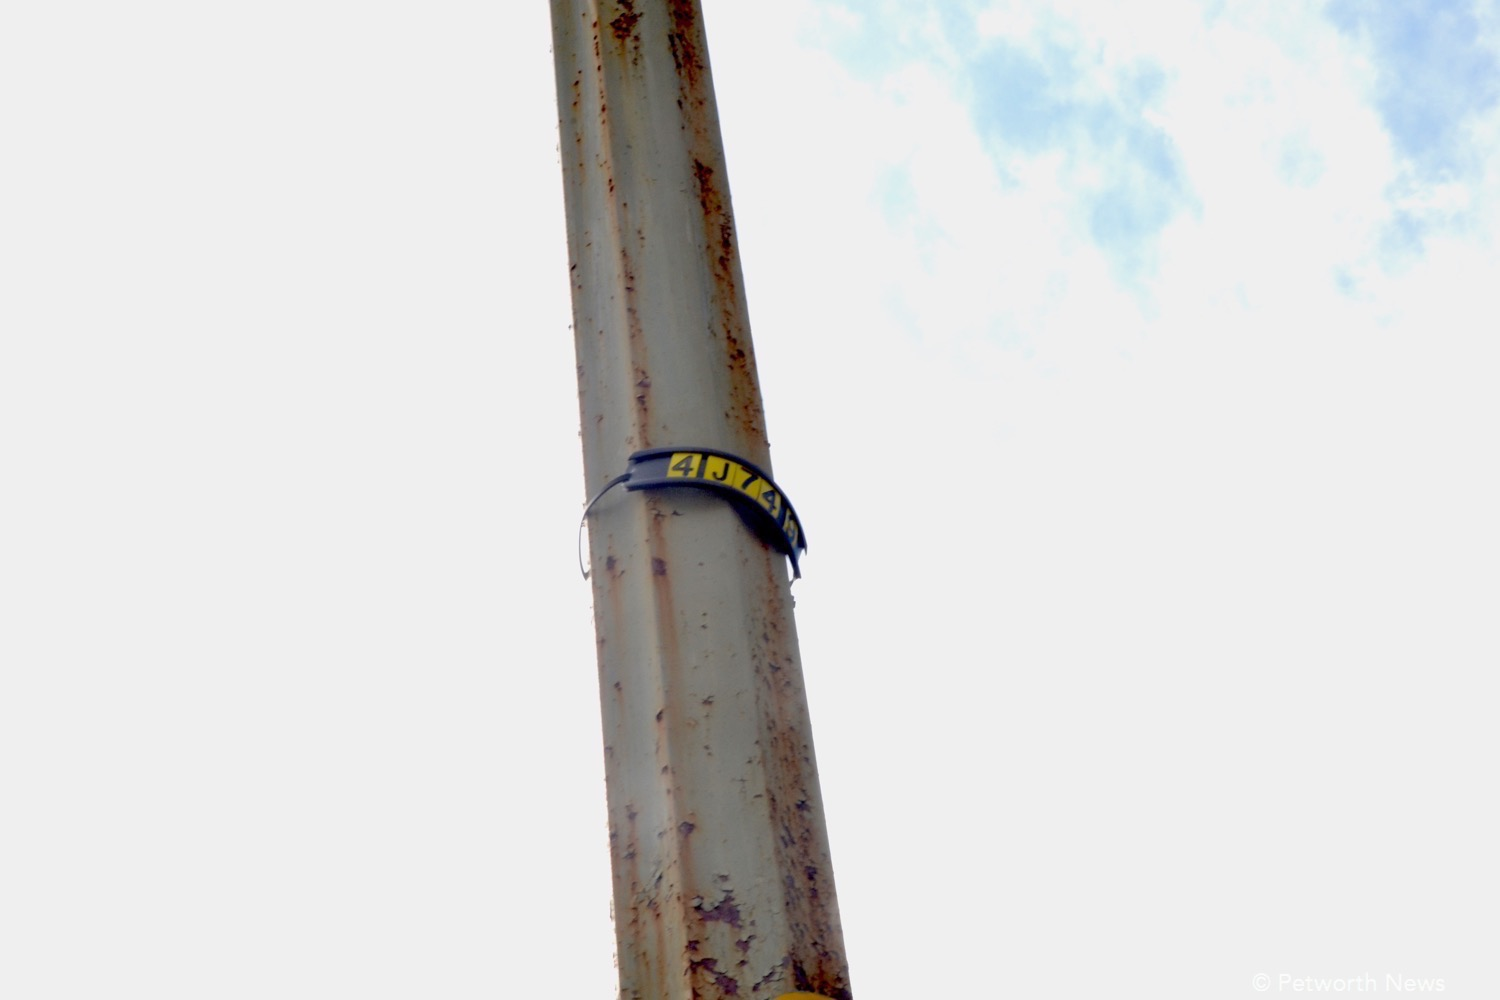 If needed, look for the specific number on each pole.